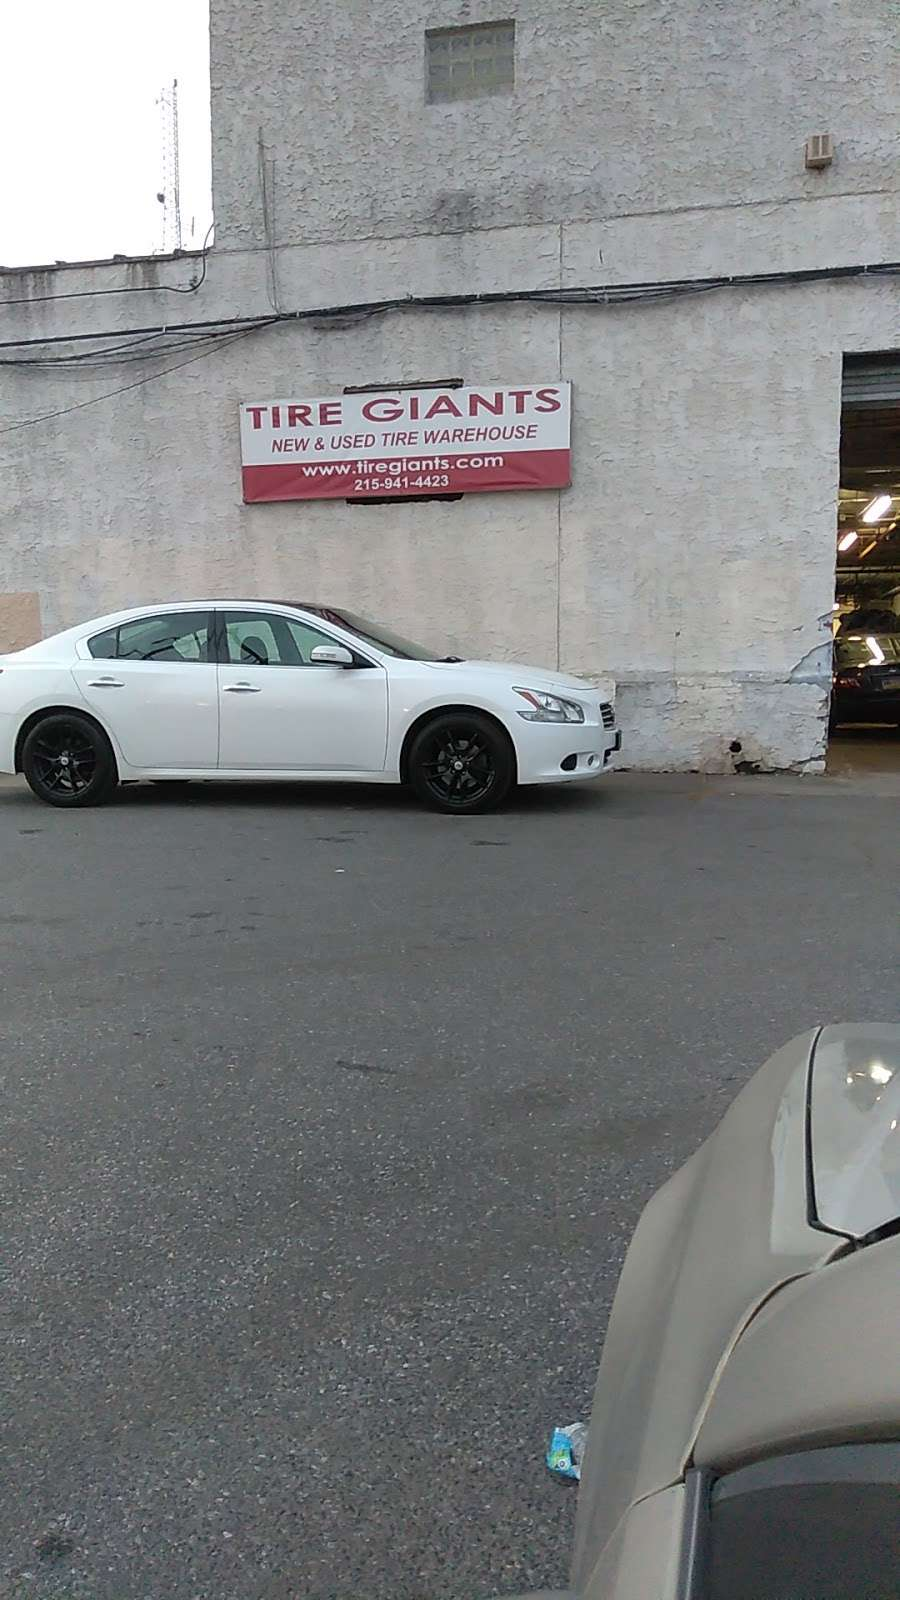 Tire Giants - car repair    Photo 6 of 10   Address: 8301 Torresdale Ave, Philadelphia, PA 19136, USA   Phone: (215) 941-4423